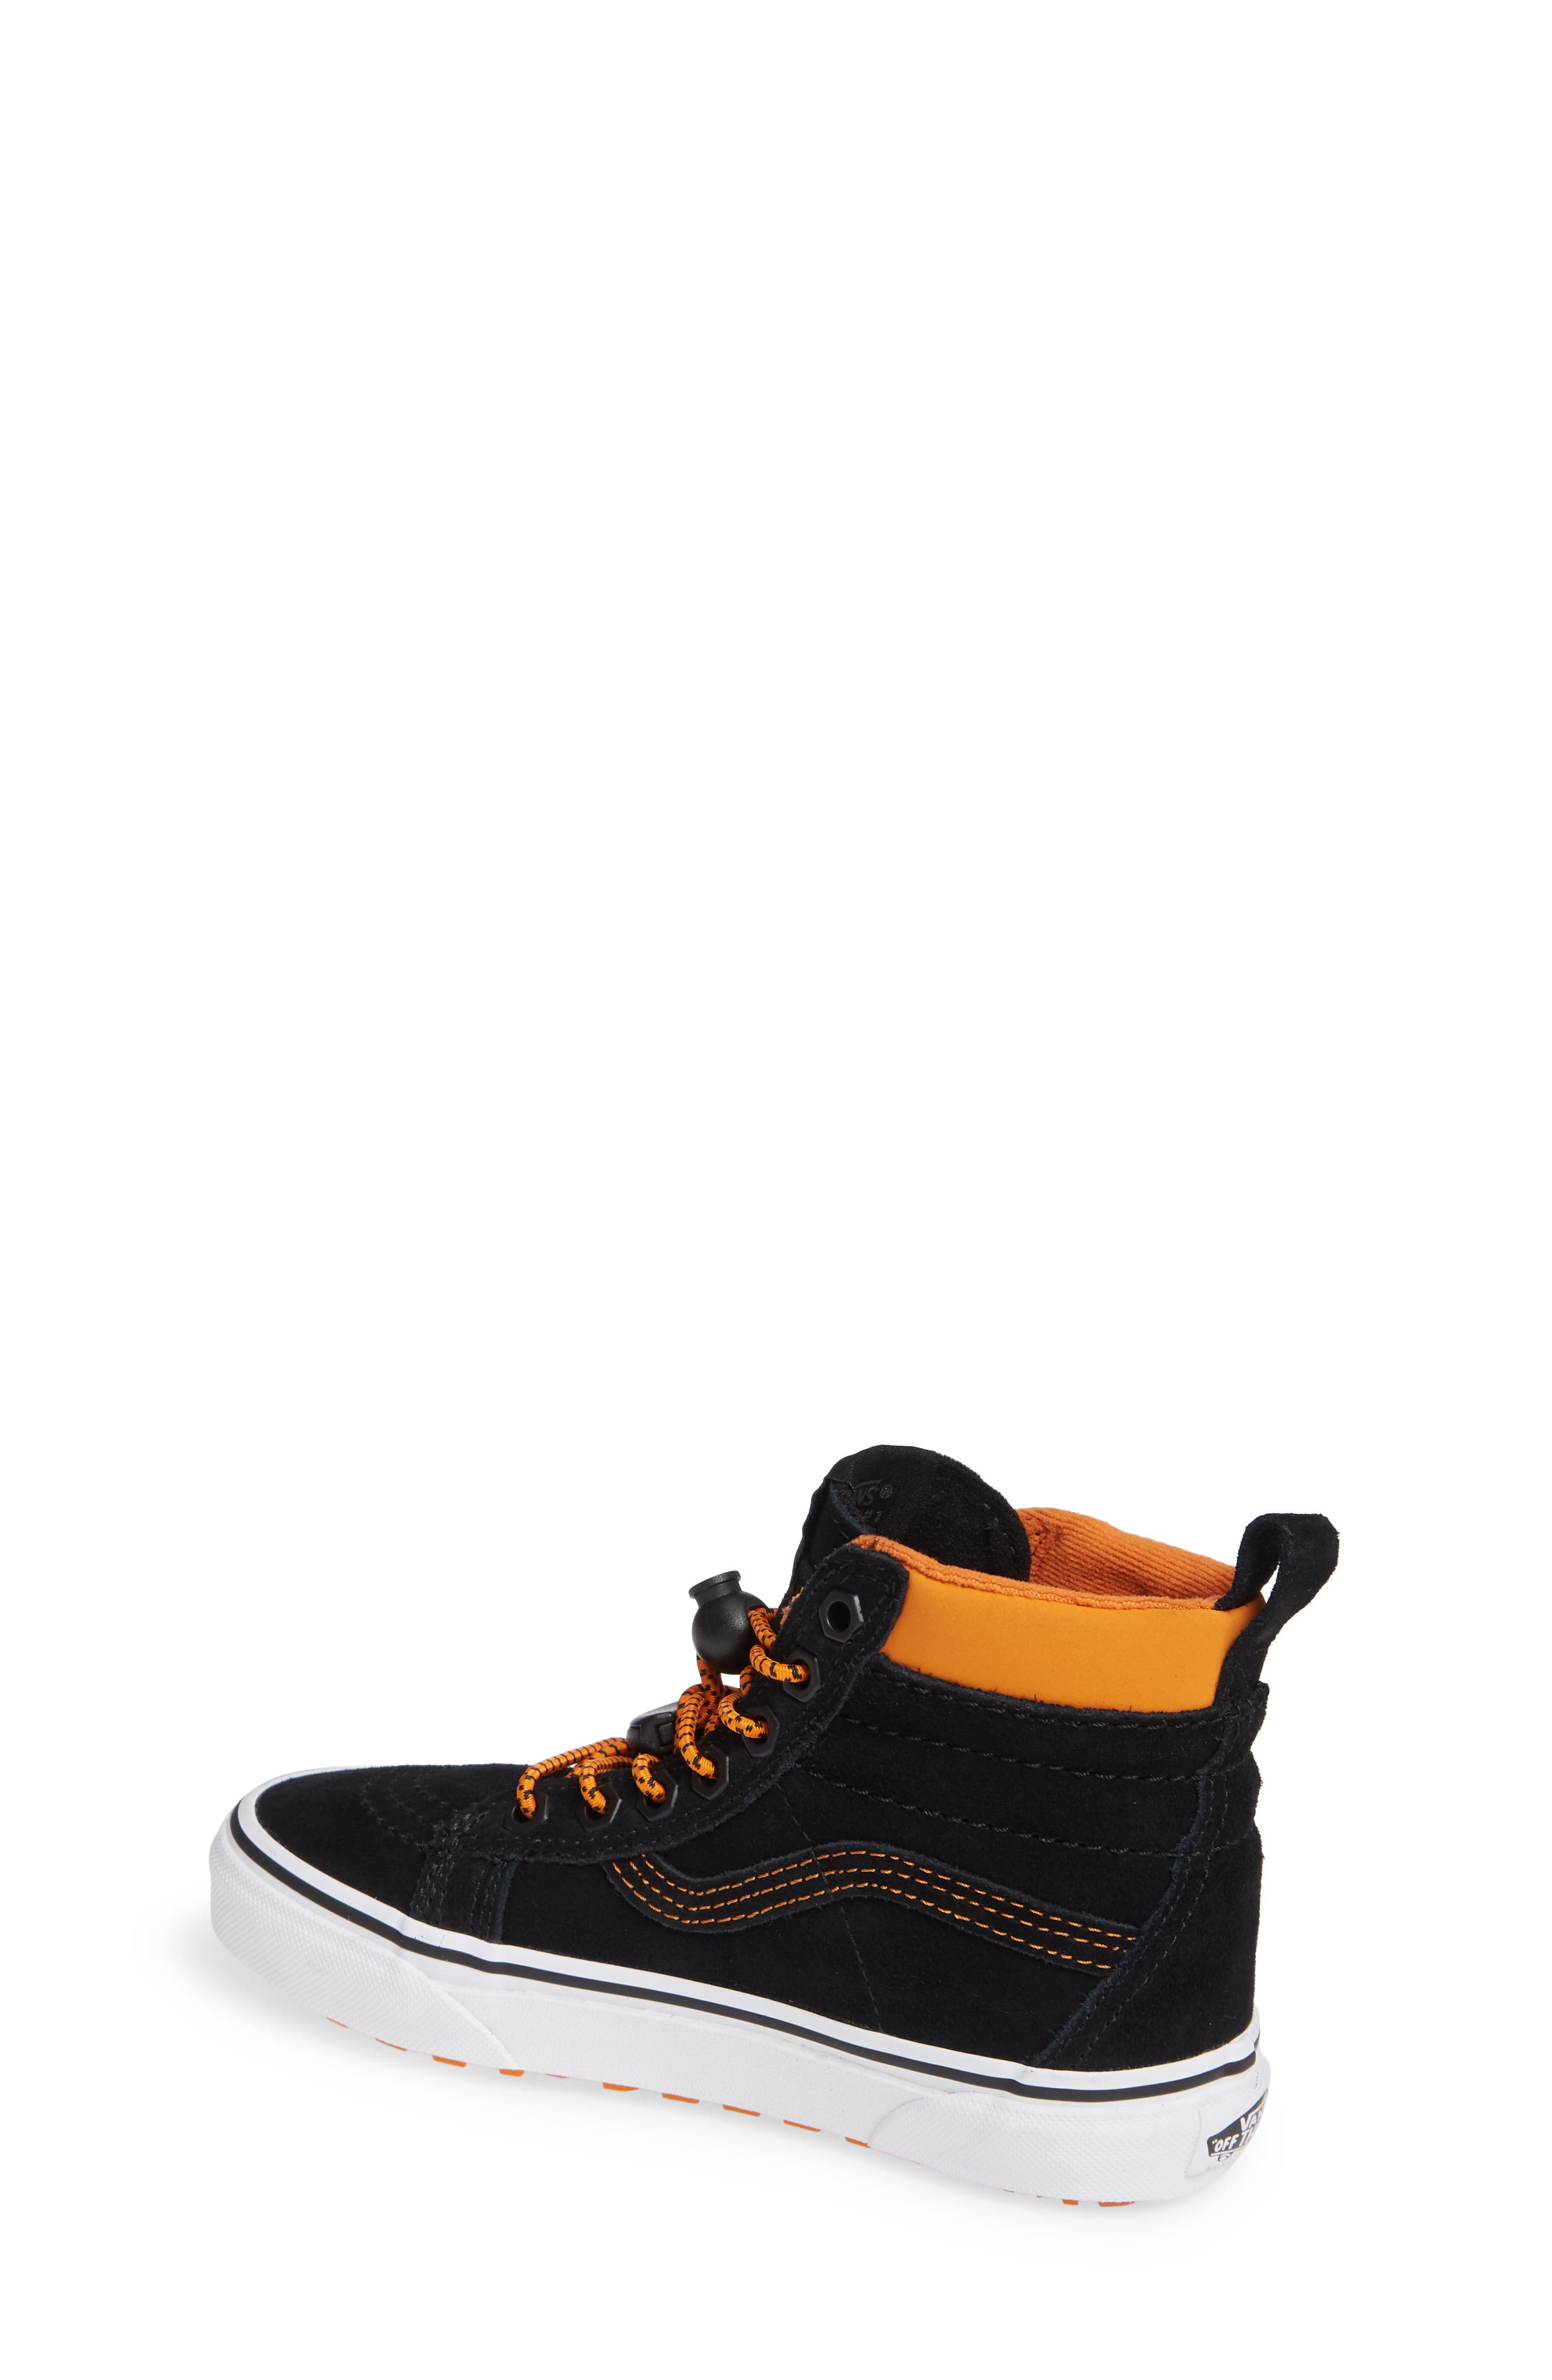 SK8-Hi Sneaker,                             Alternate thumbnail 14, color,